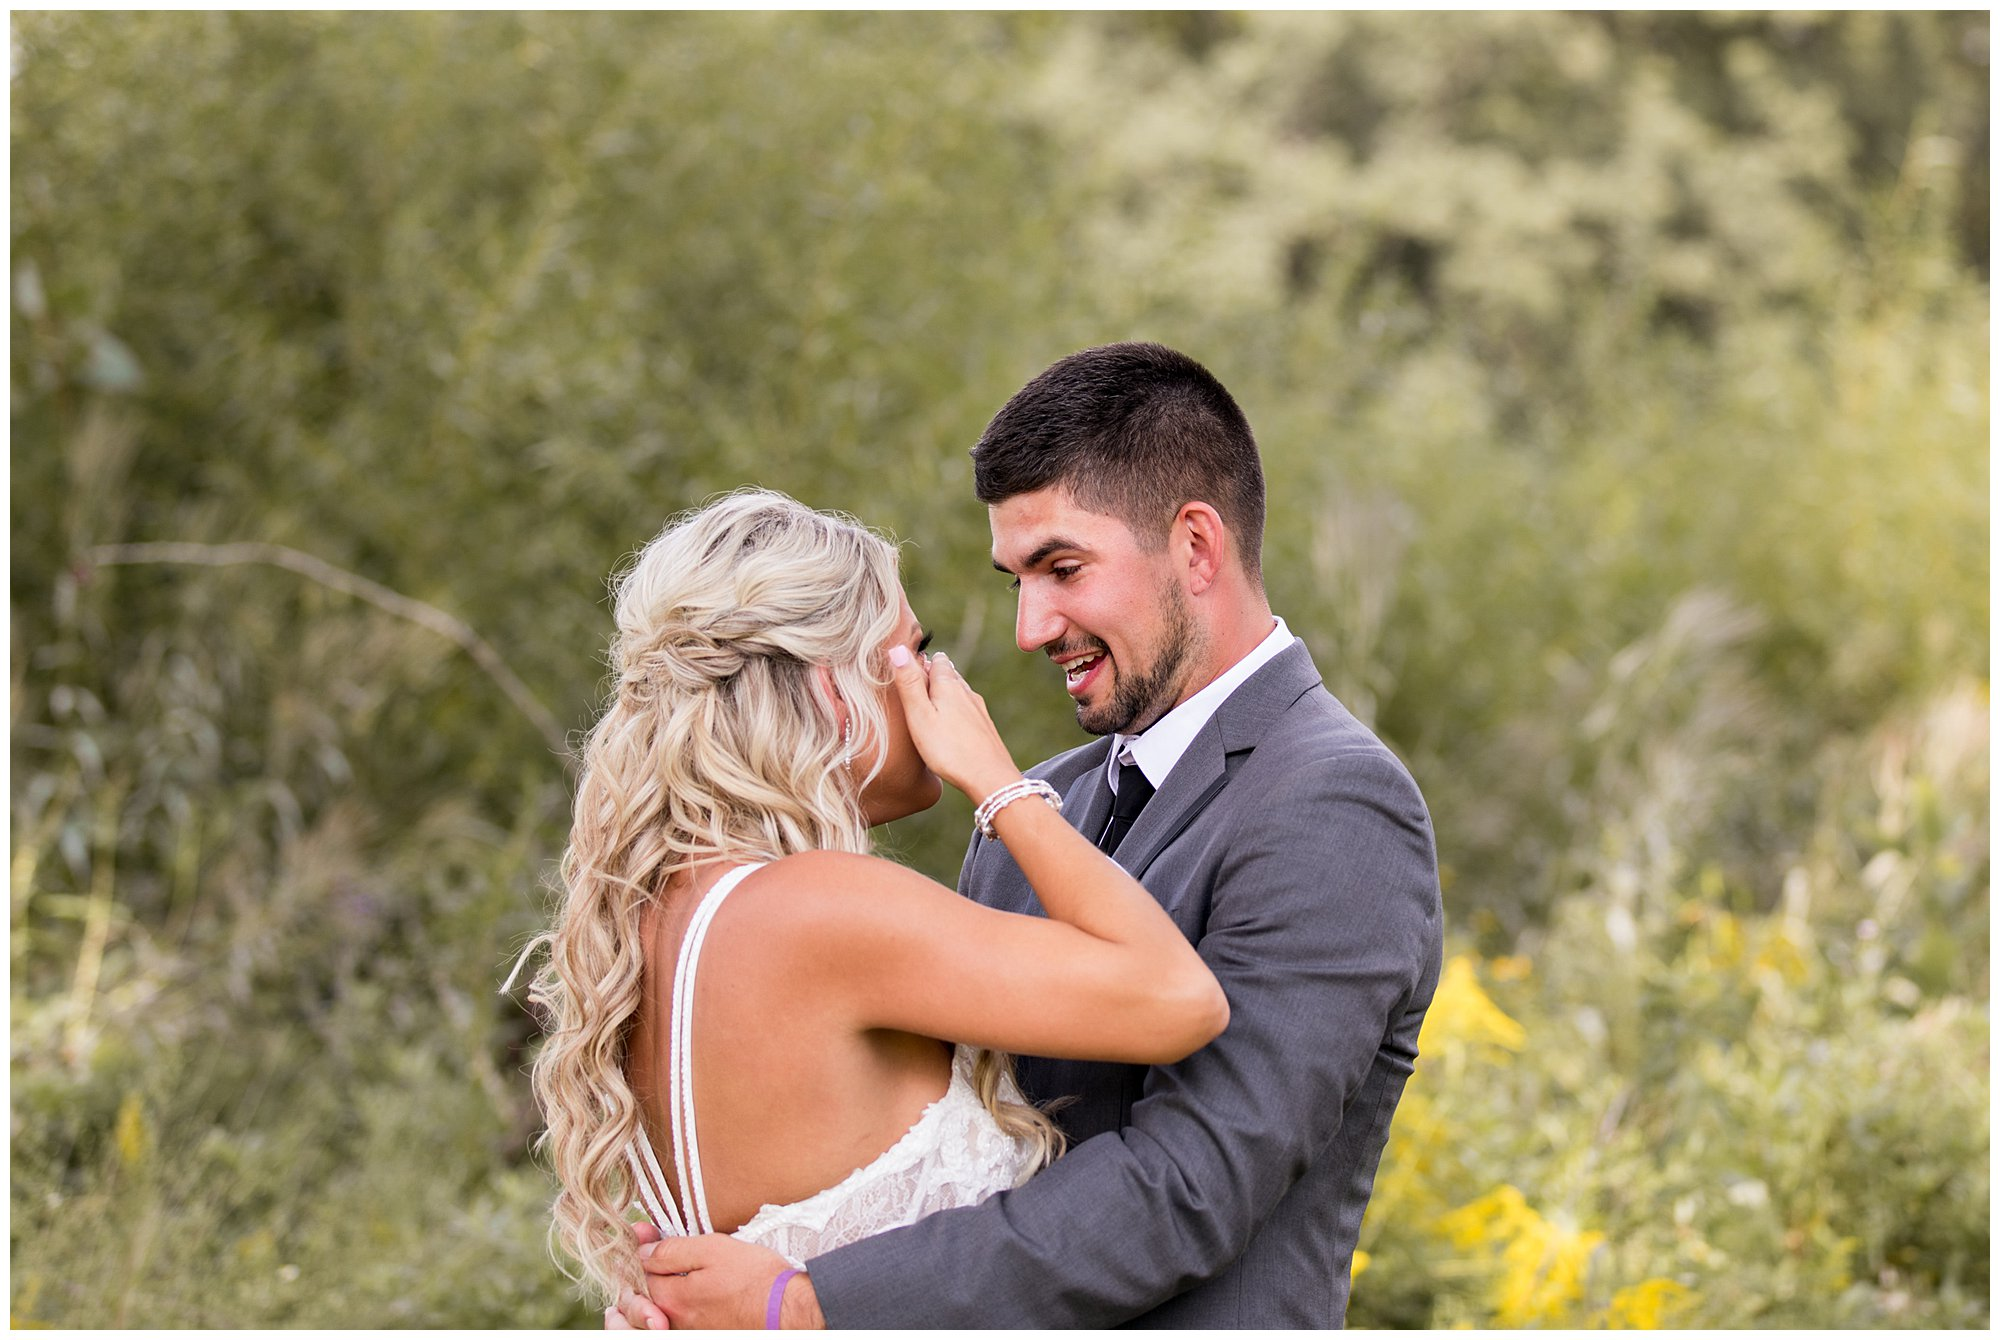 bride wipes away tears after seeing groom for first time on wedding day in Fort Wayne